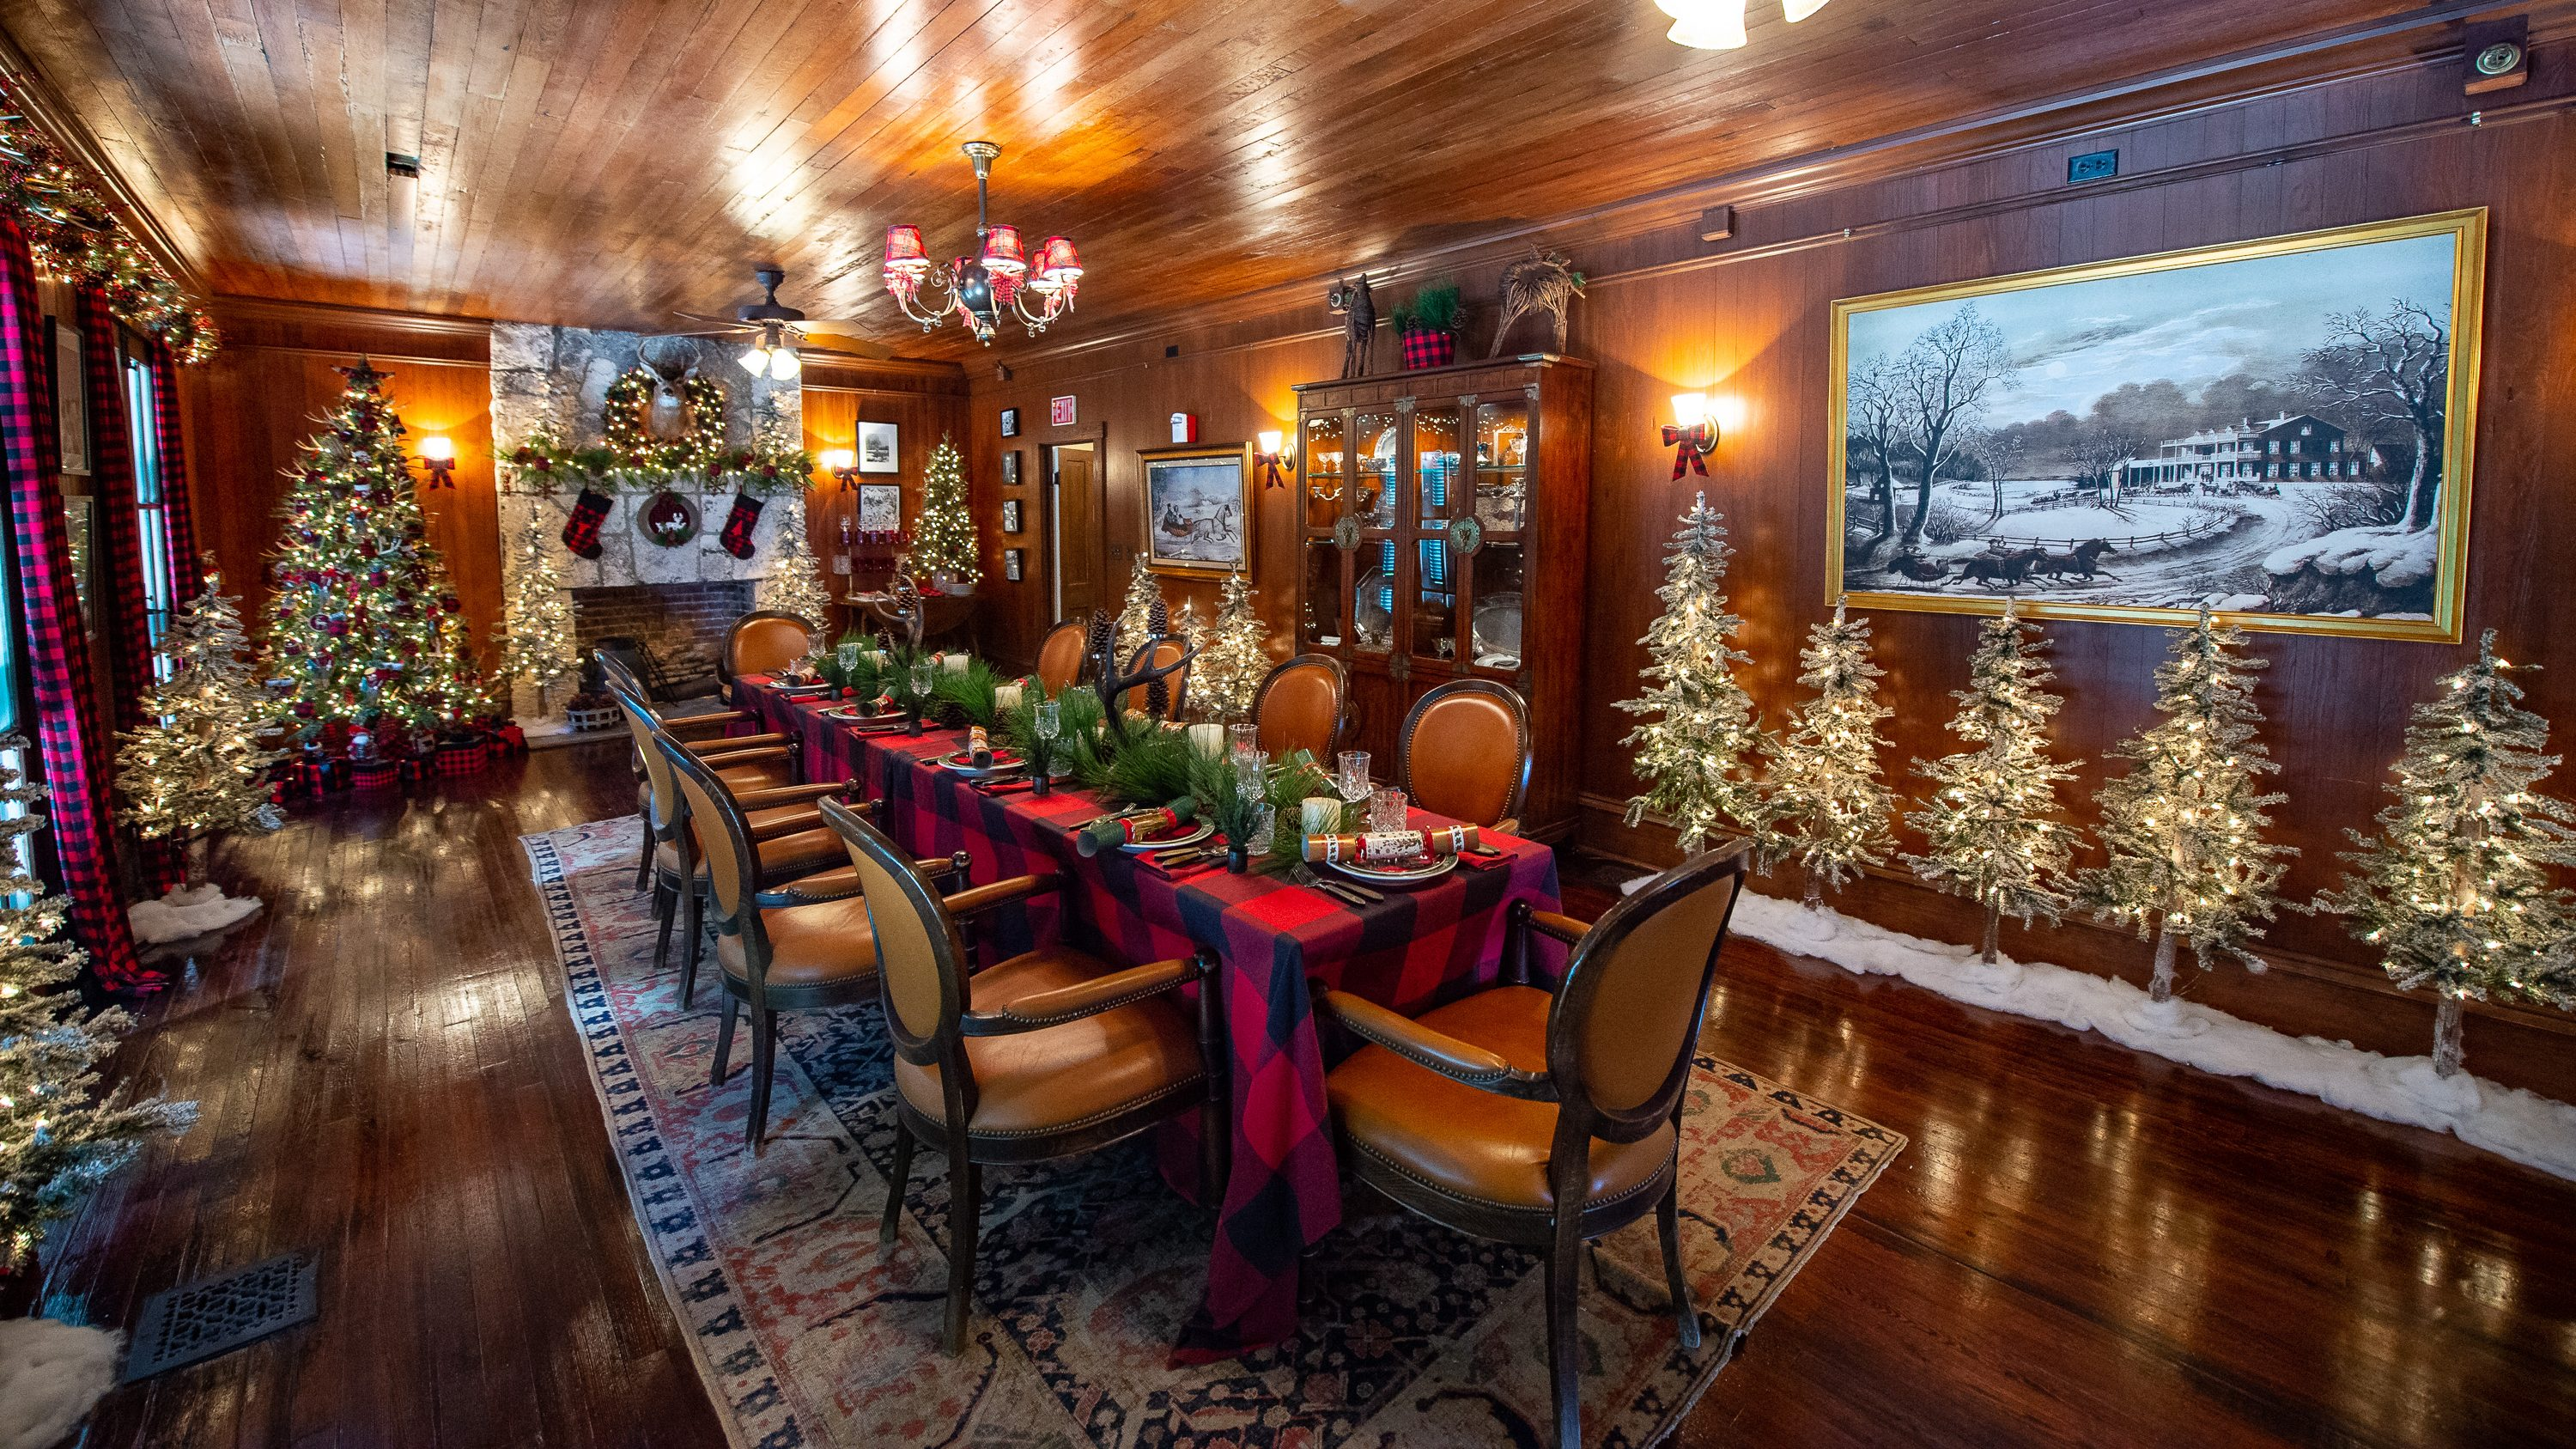 Dining room of the Richmond cottage fully decorated for the winter holidays coming up